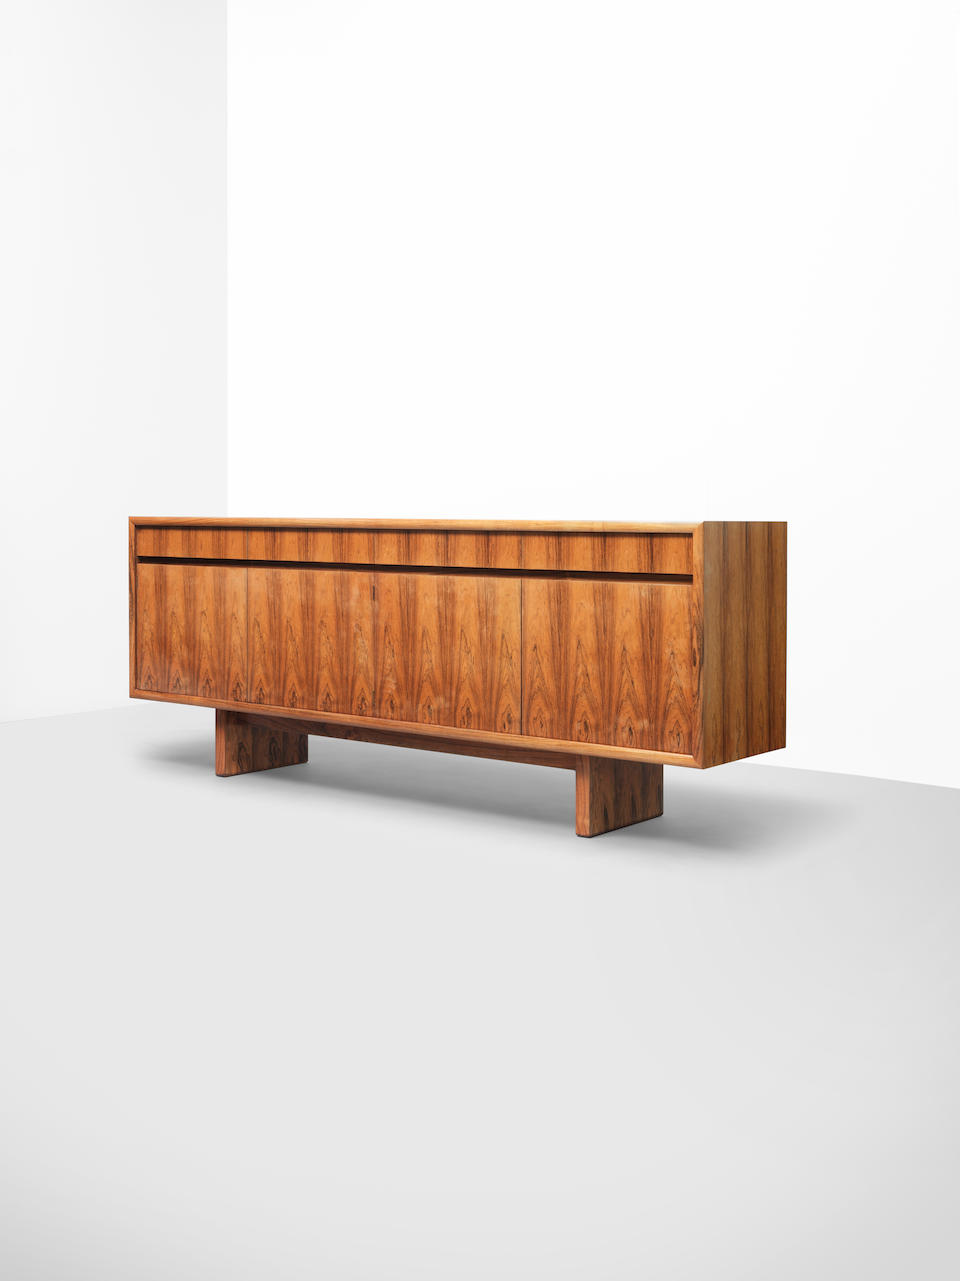 Martin Hall for Gordon Russell Sideboard, model no. R.456, from 'The Marwood Room' series, designed 1972, produced 1973